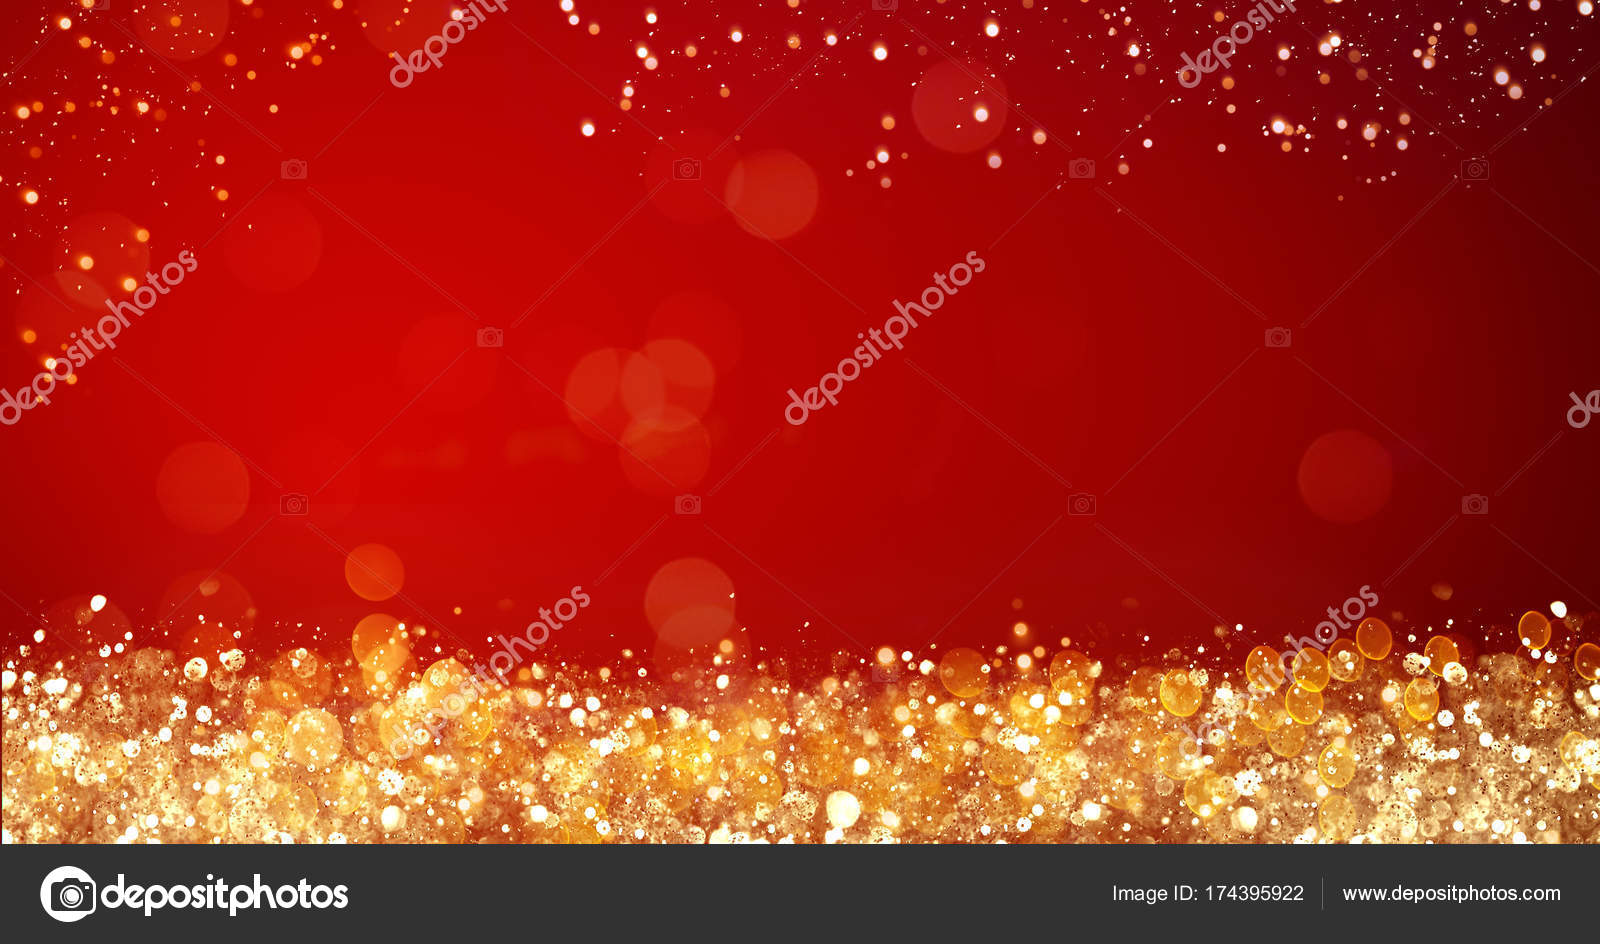 Golden and silver xmas lights on red background for merry christmas golden and silver xmas lights on red background for merry christmas or season greetings message m4hsunfo